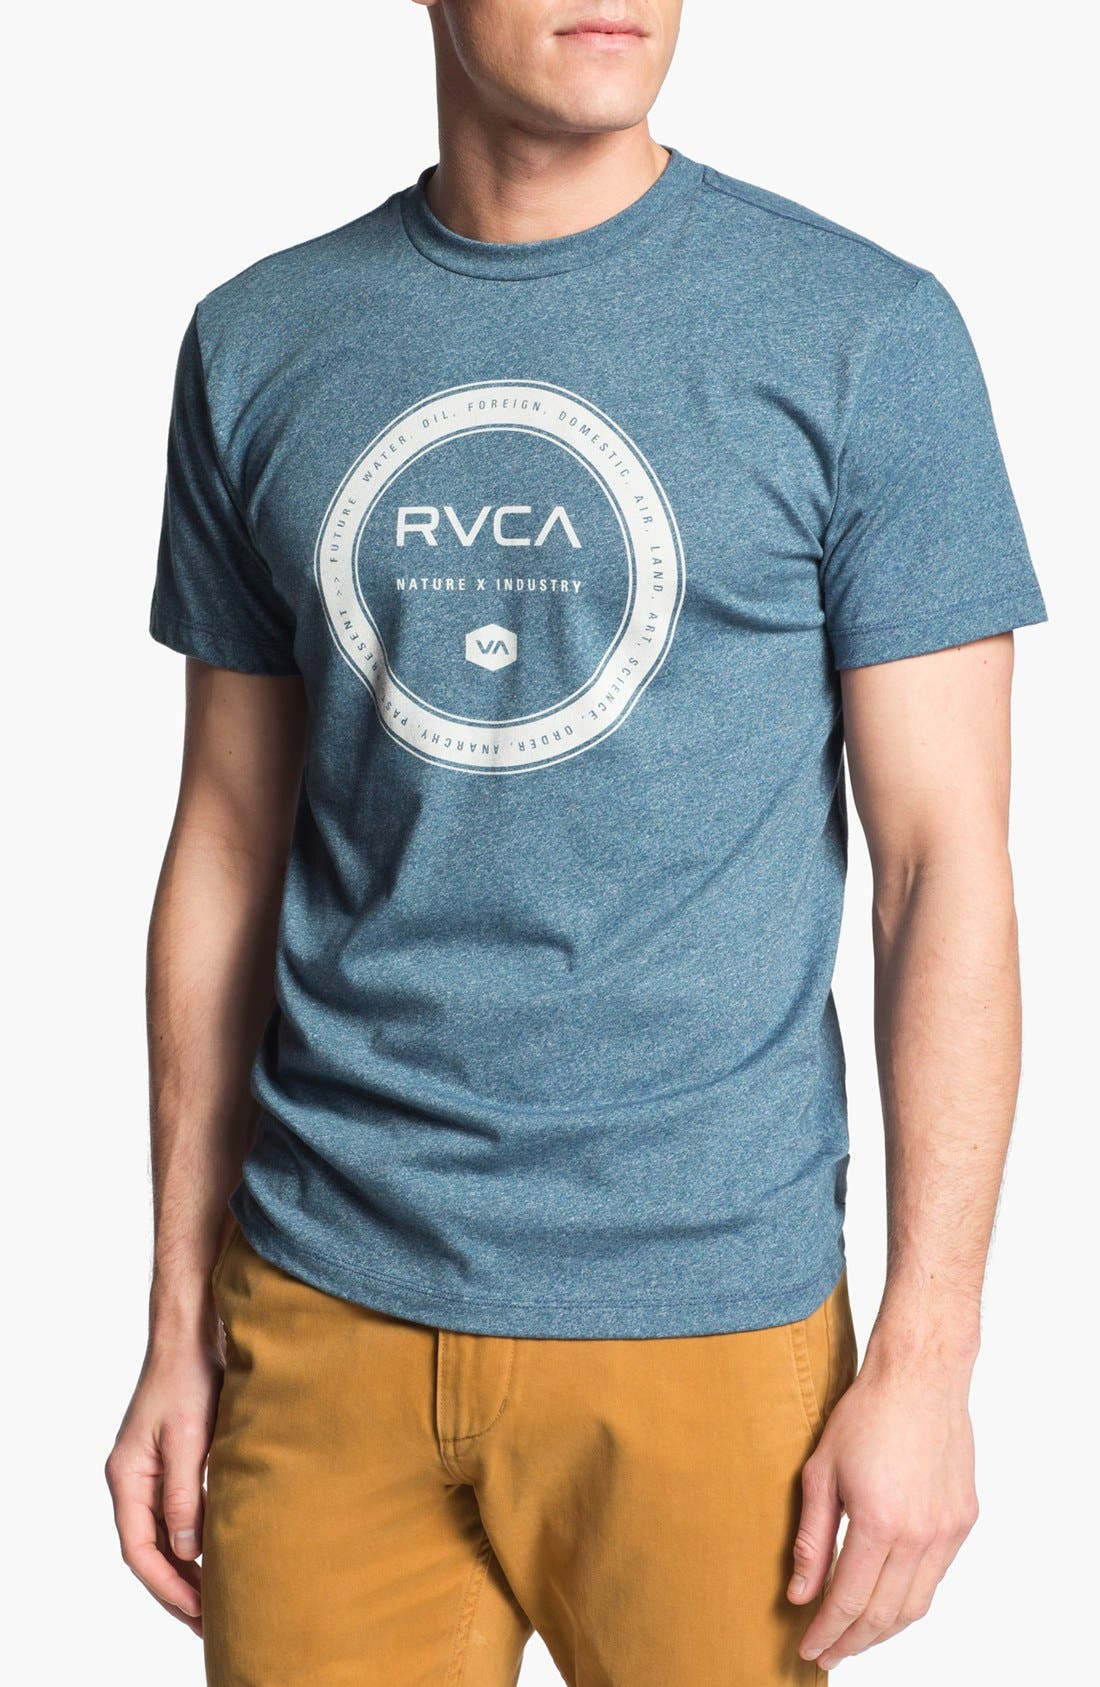 Alternate Image 1 Selected - RVCA 'Wheel' Graphic T-Shirt